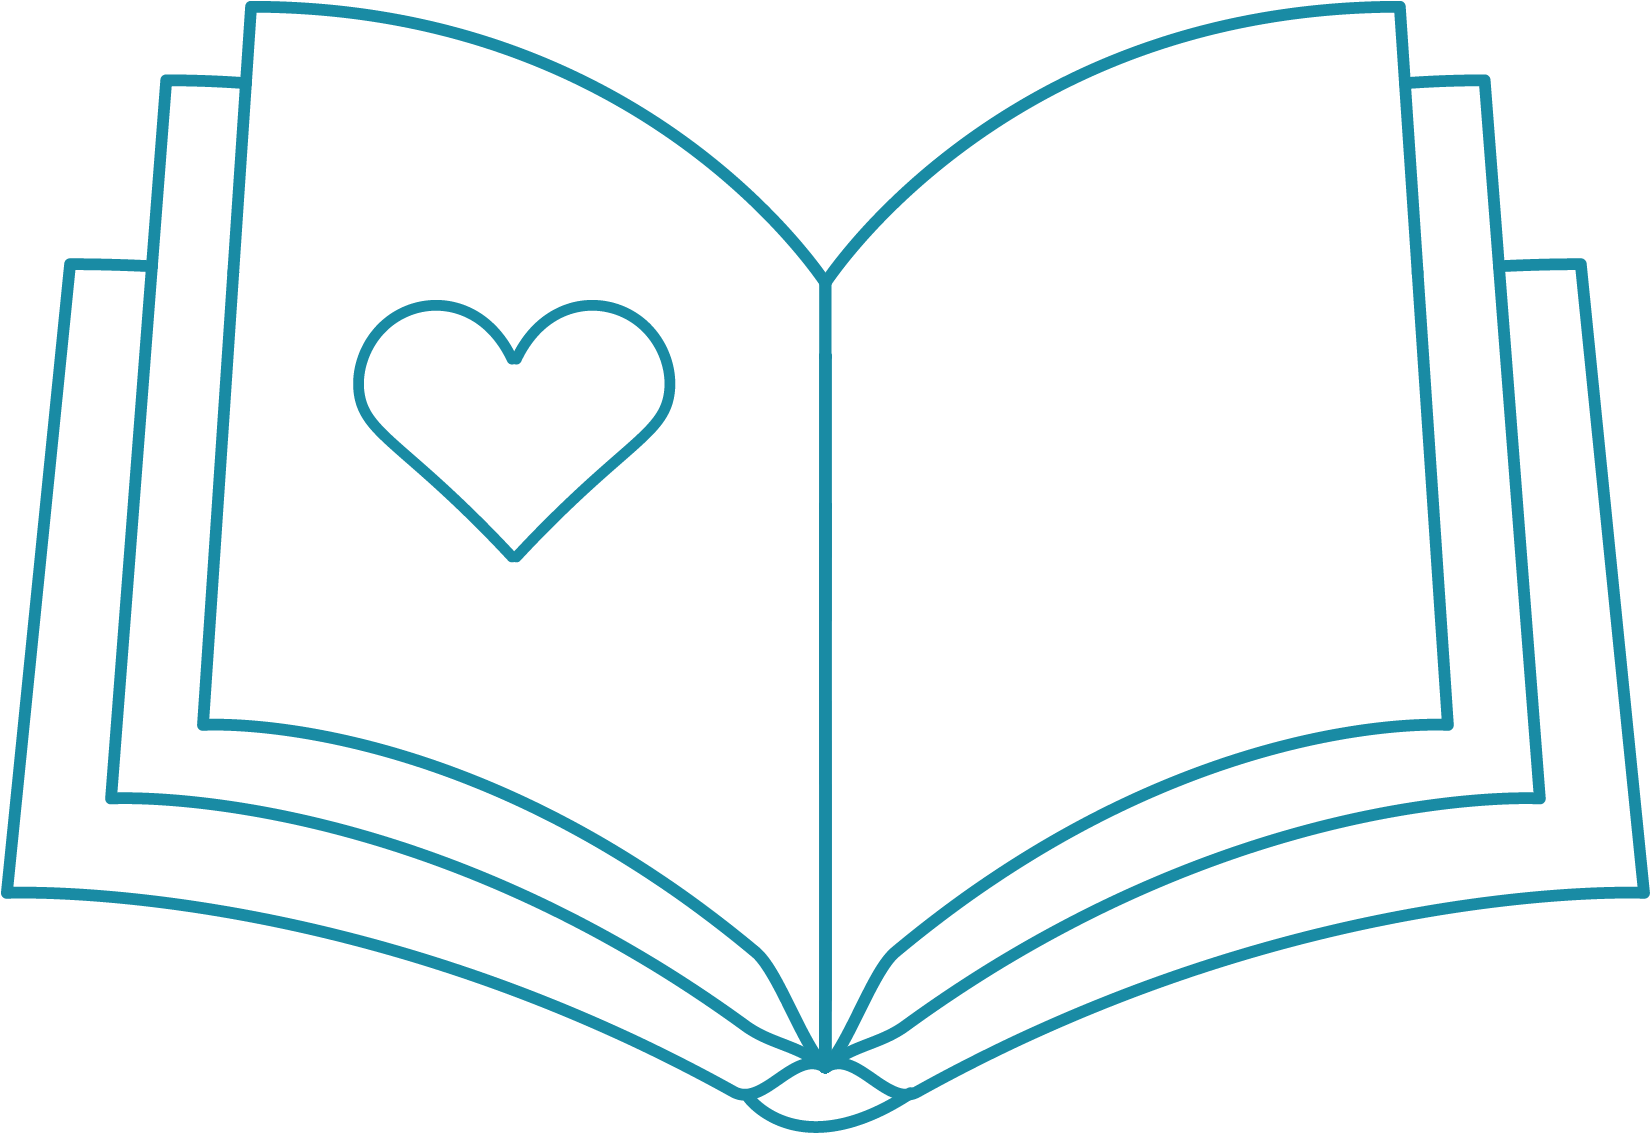 Icon of book with heart